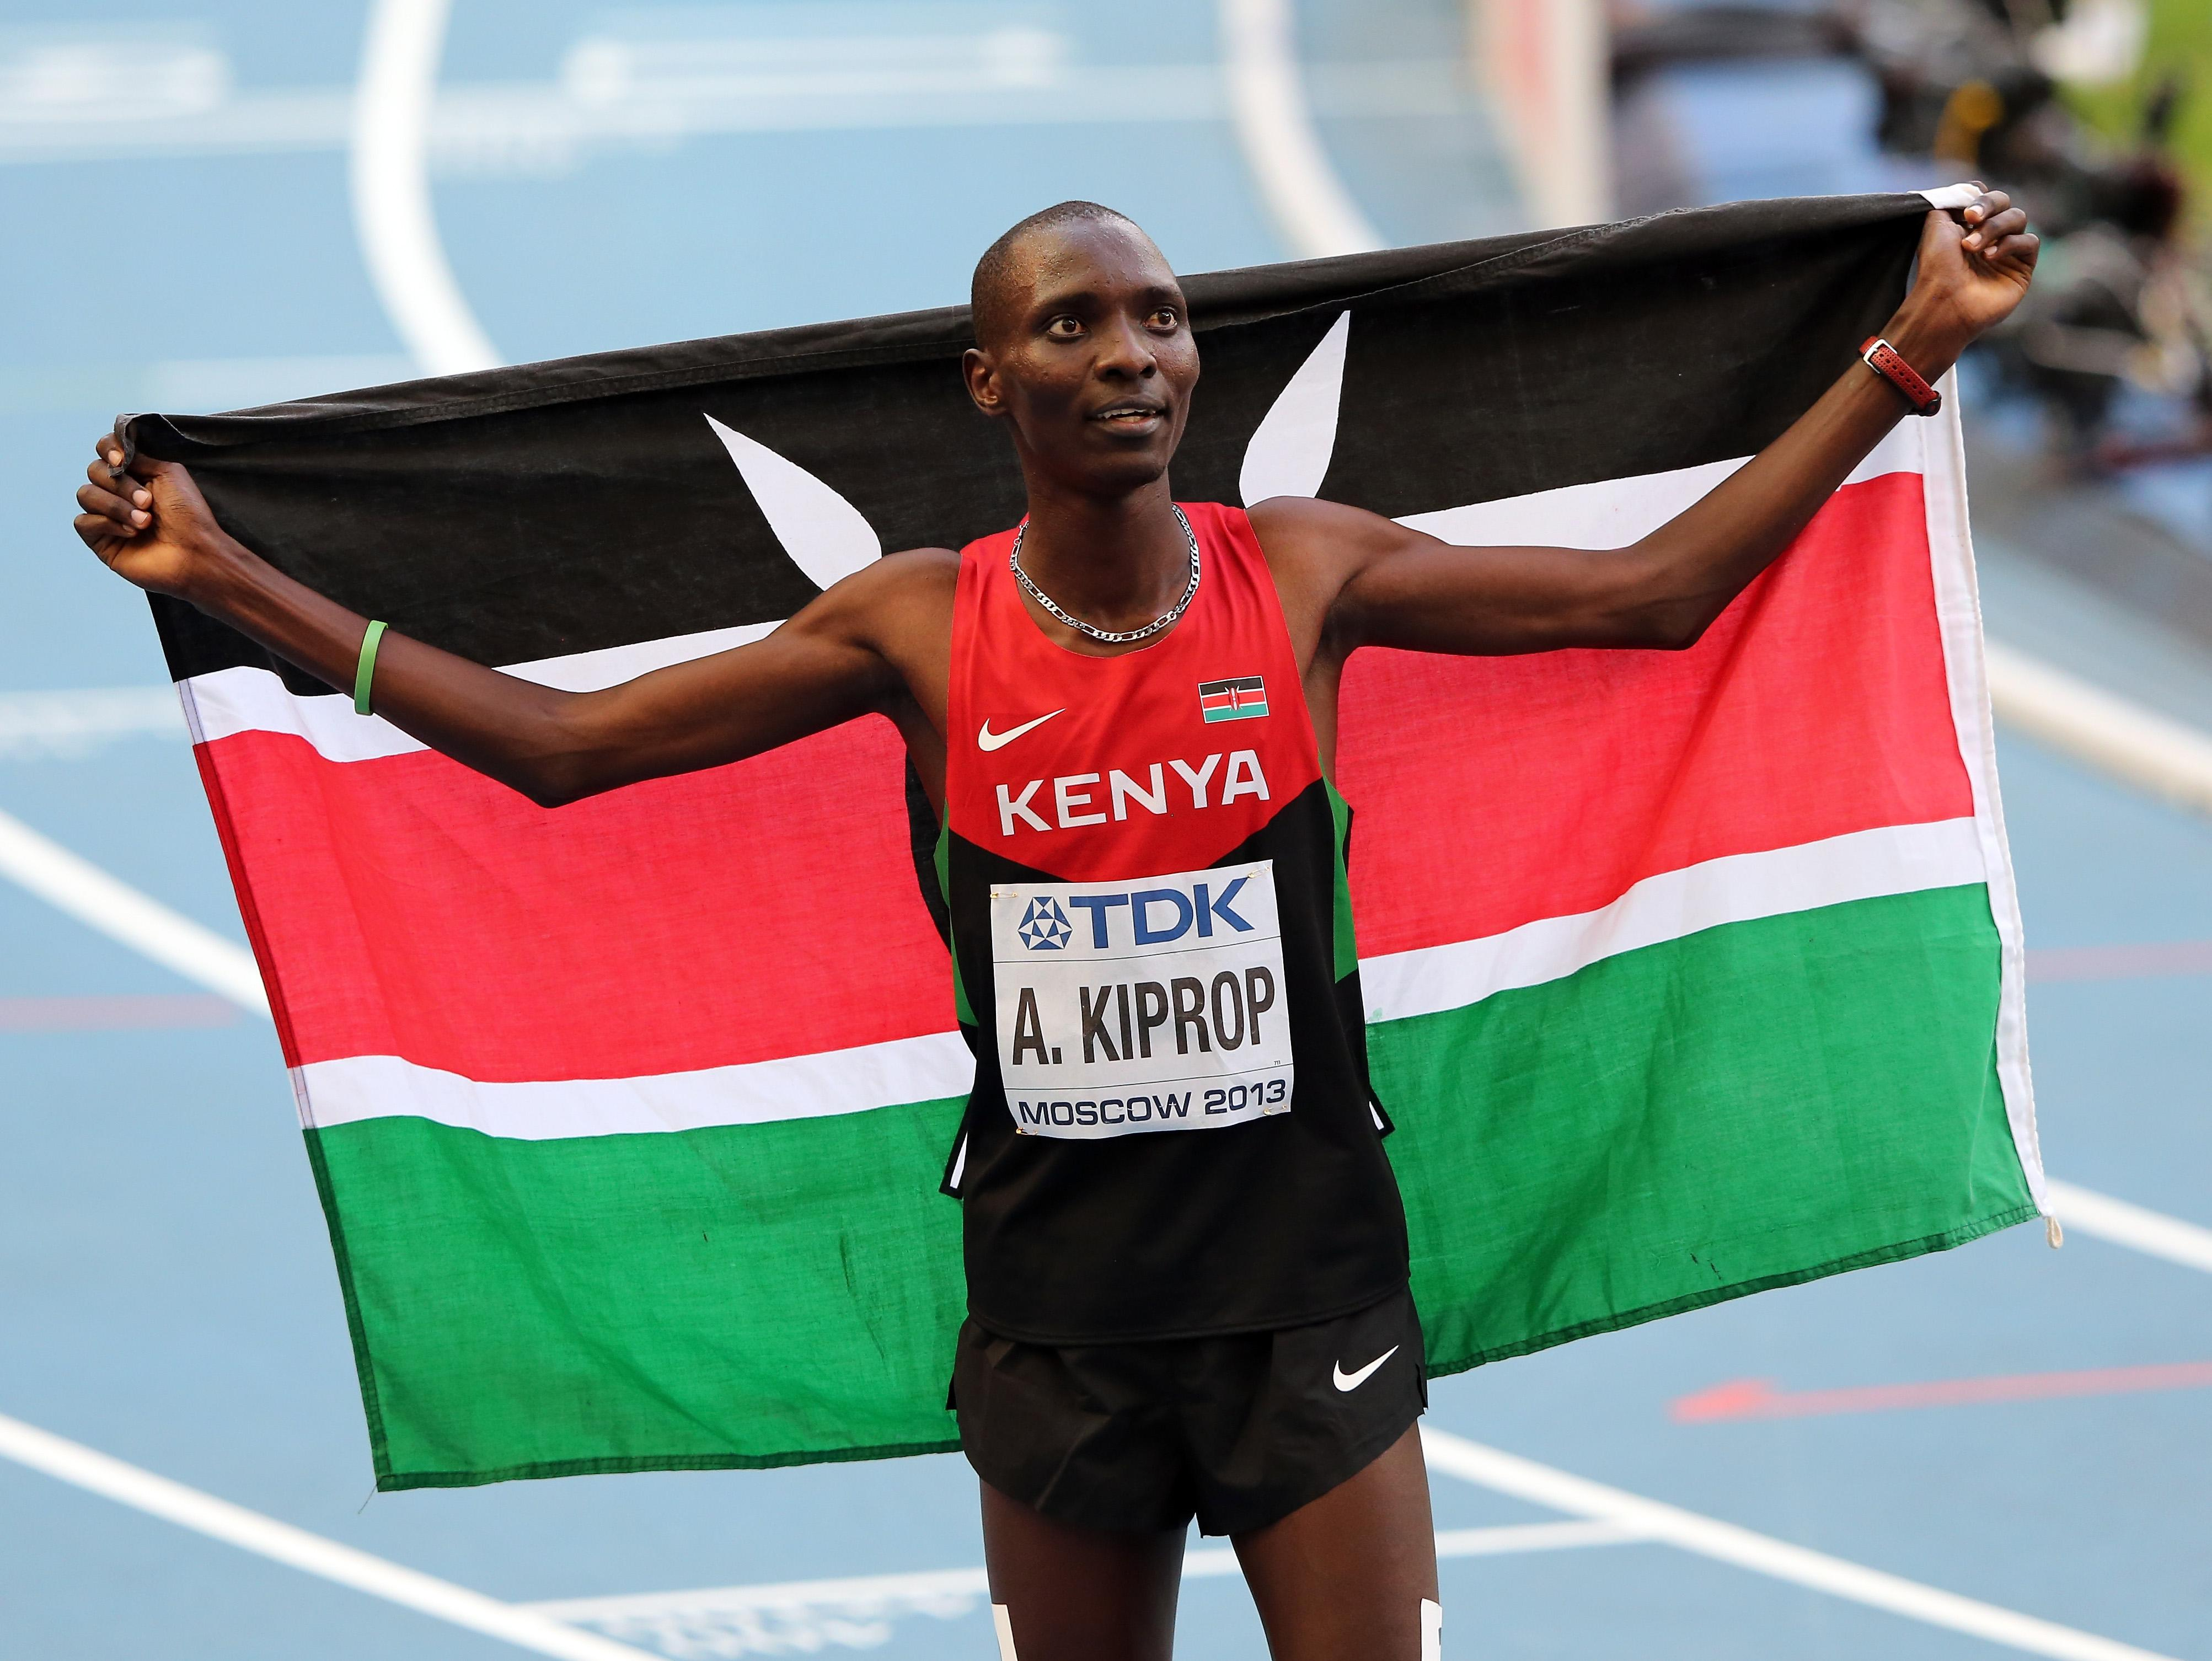 The Kenyan also revealed he was forewarned ahead of his drugs test